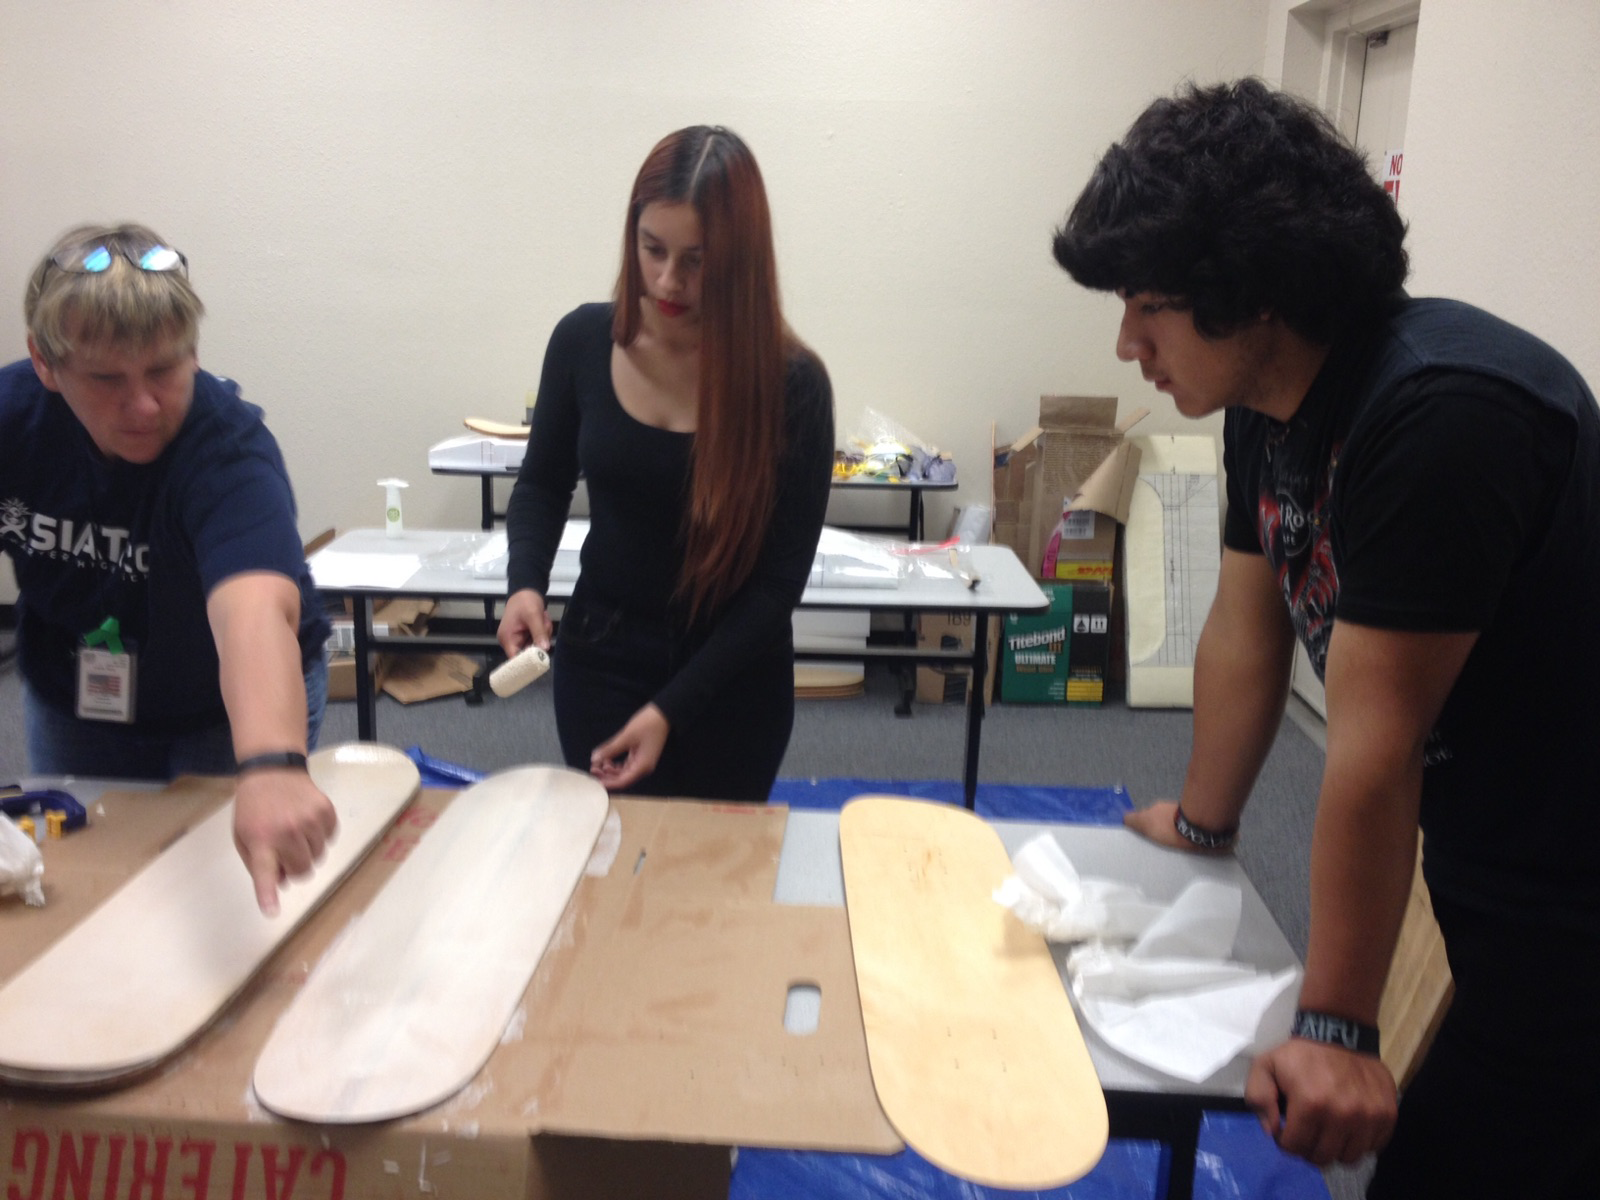 SIATech San Diego offers a unique course where students learn to make skateboards.